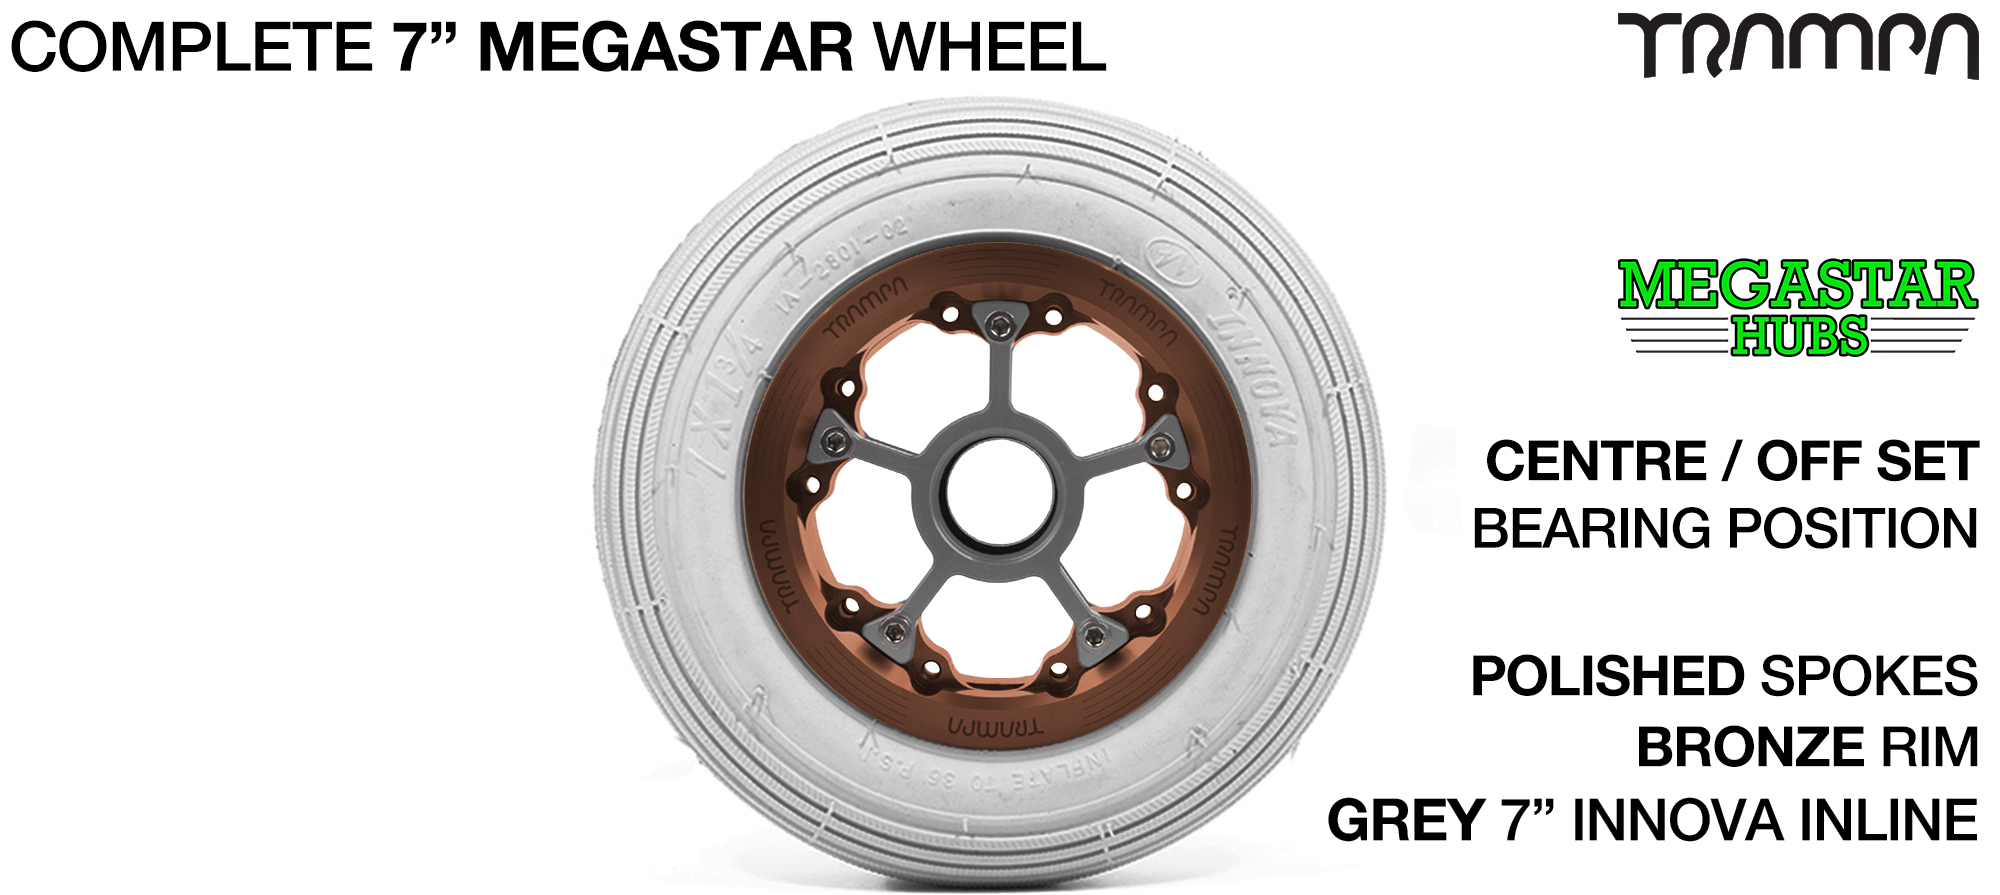 BRONZE MEGASTAR Rims with POLISHED Spokes & 7 Inch Tyres